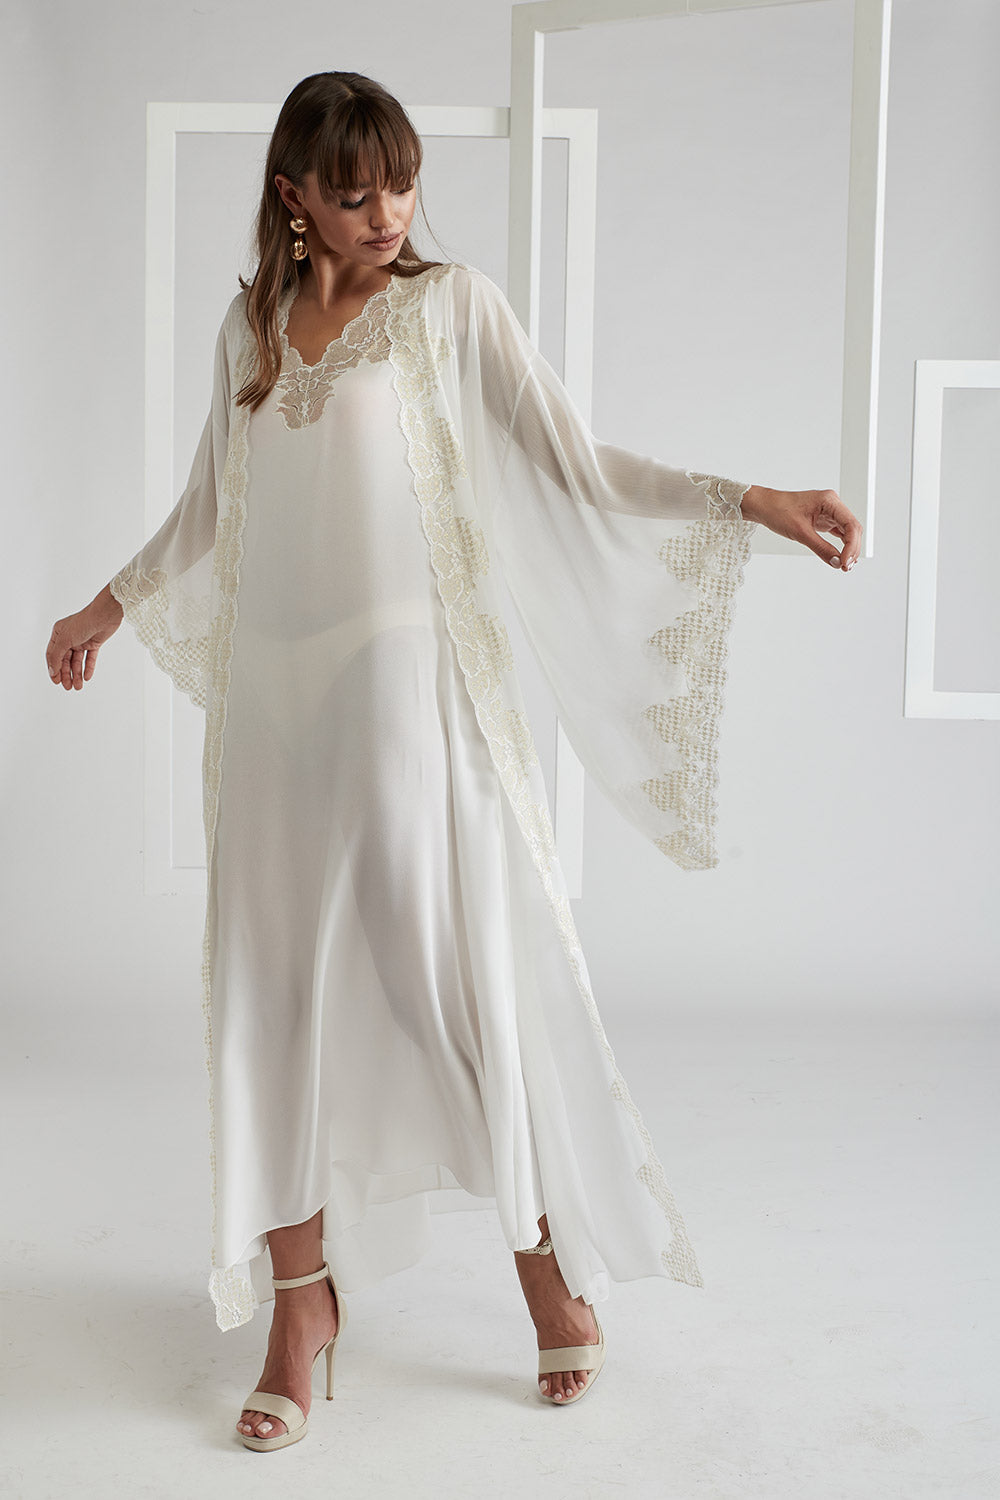 Silk Chiffon Off White Robe Set - Lucia (Gold)